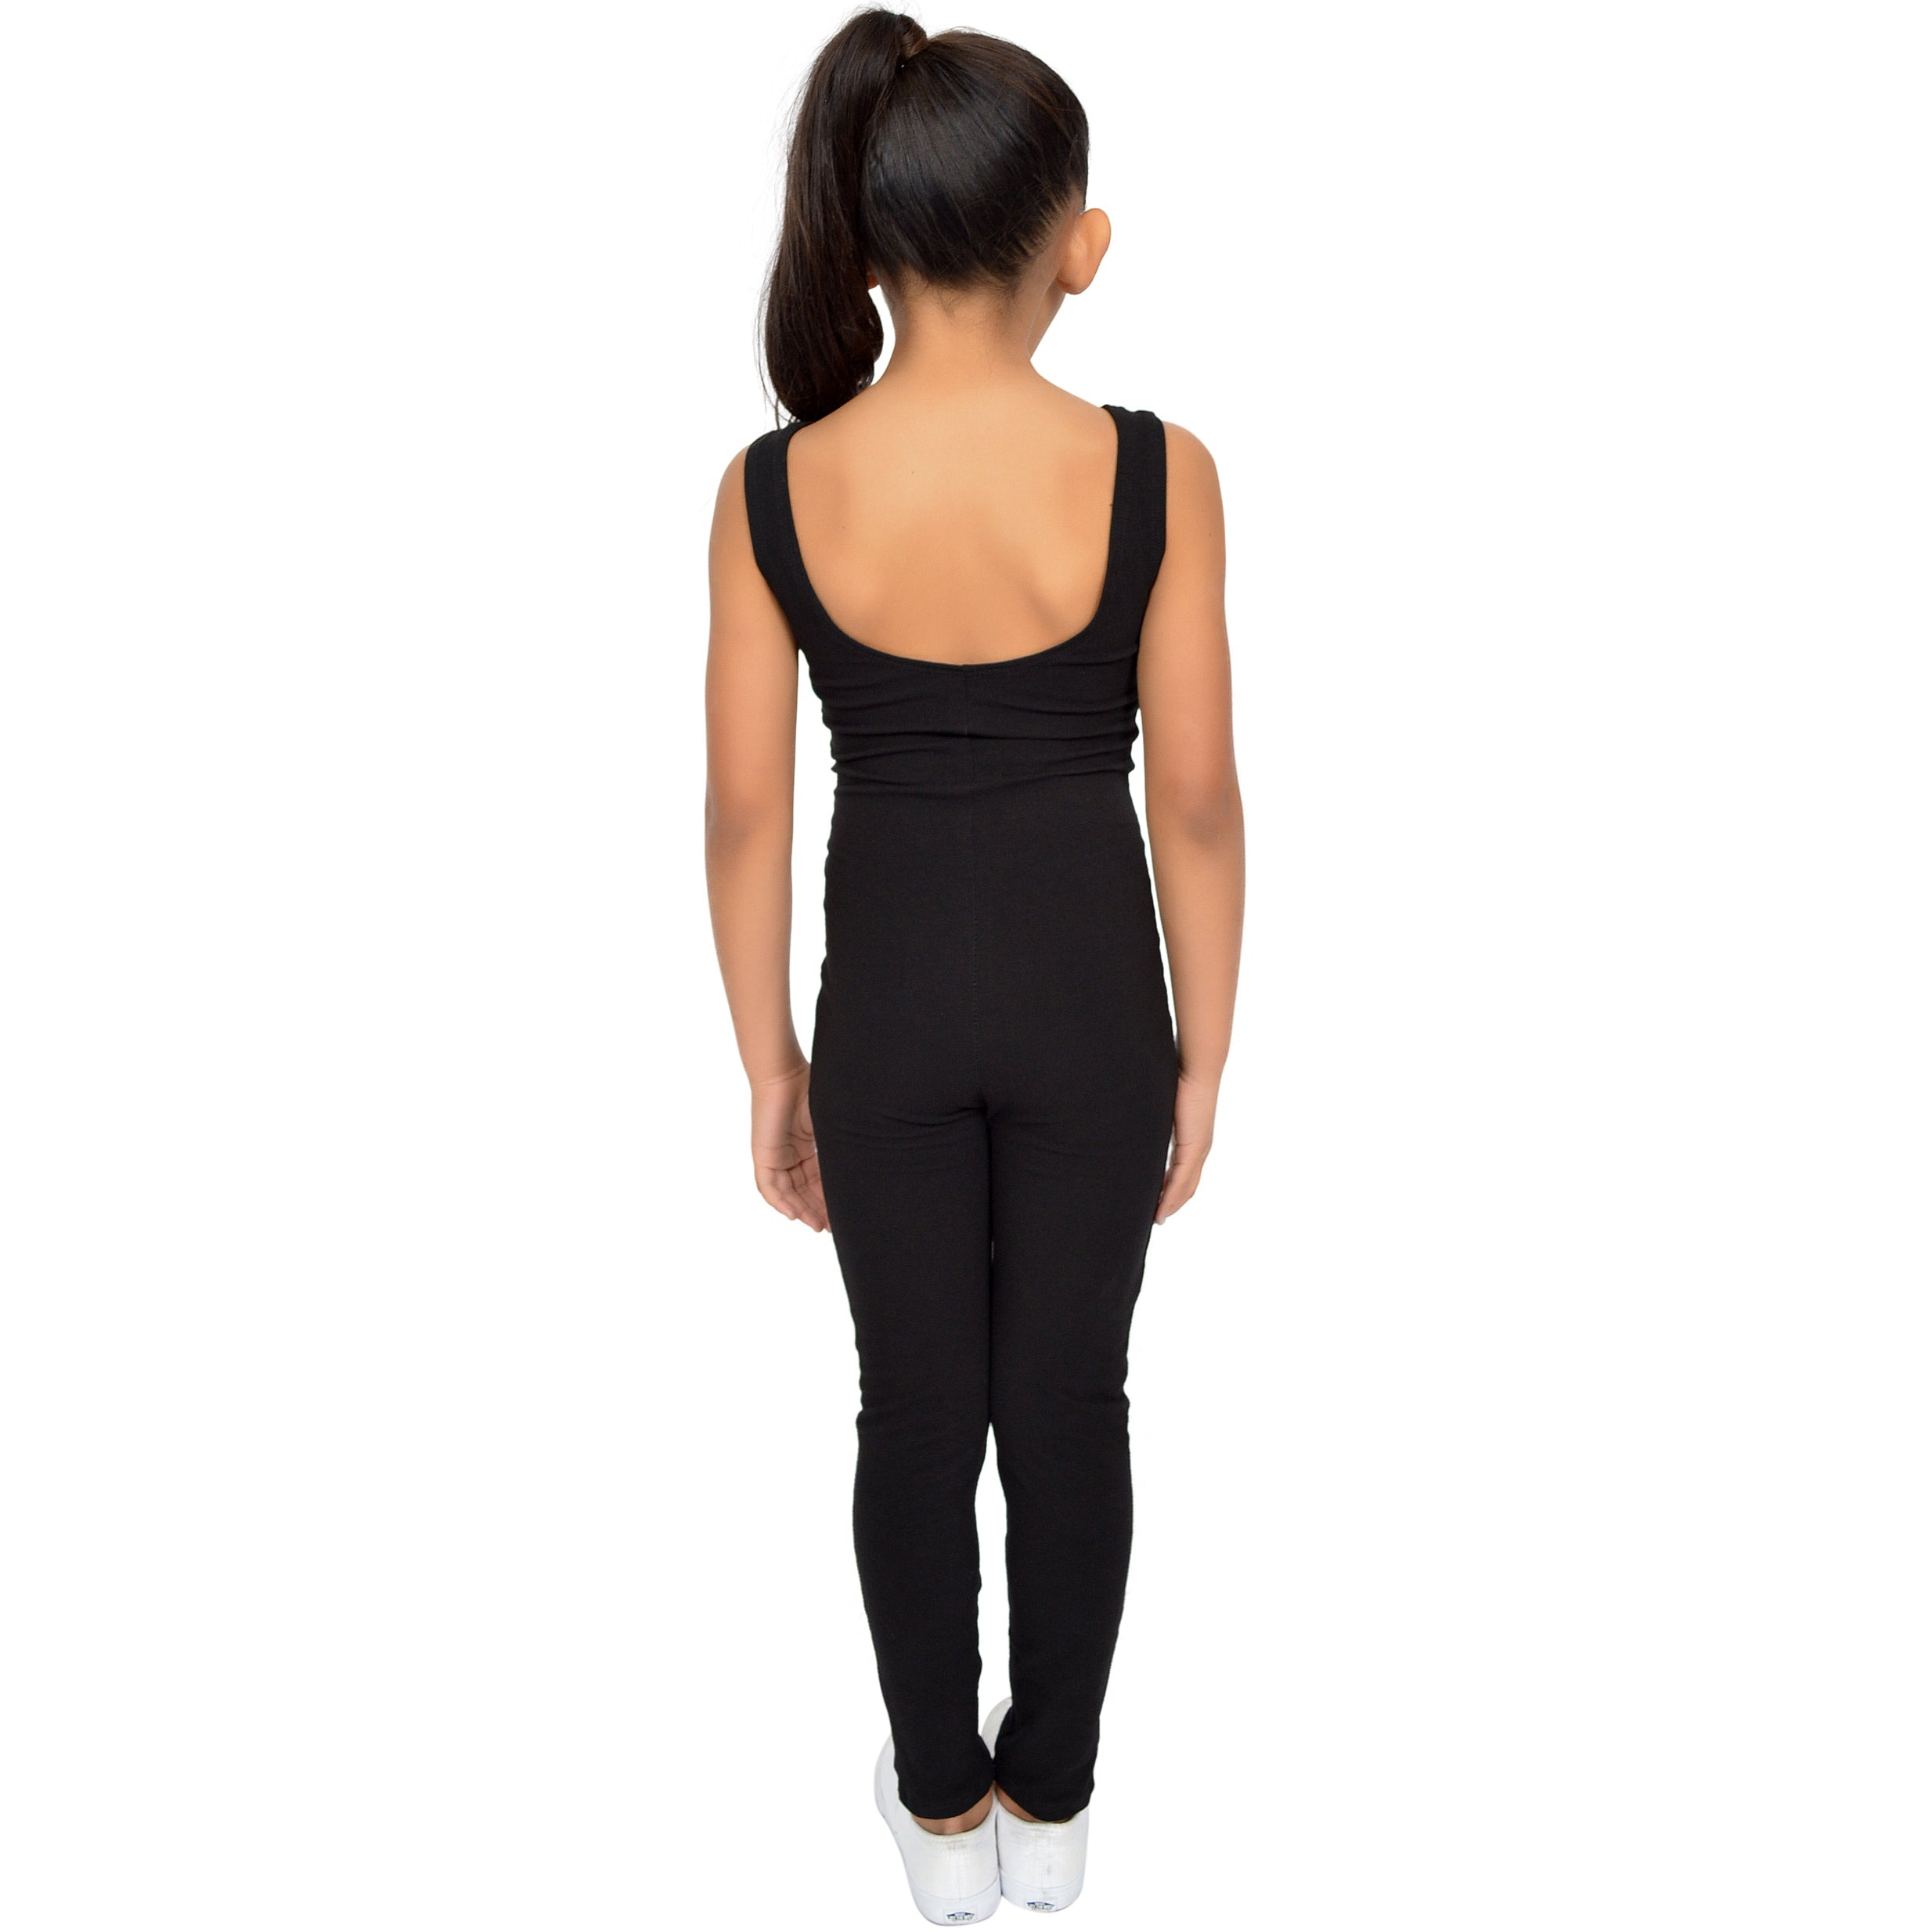 Teamwear Cotton Tank Unitard